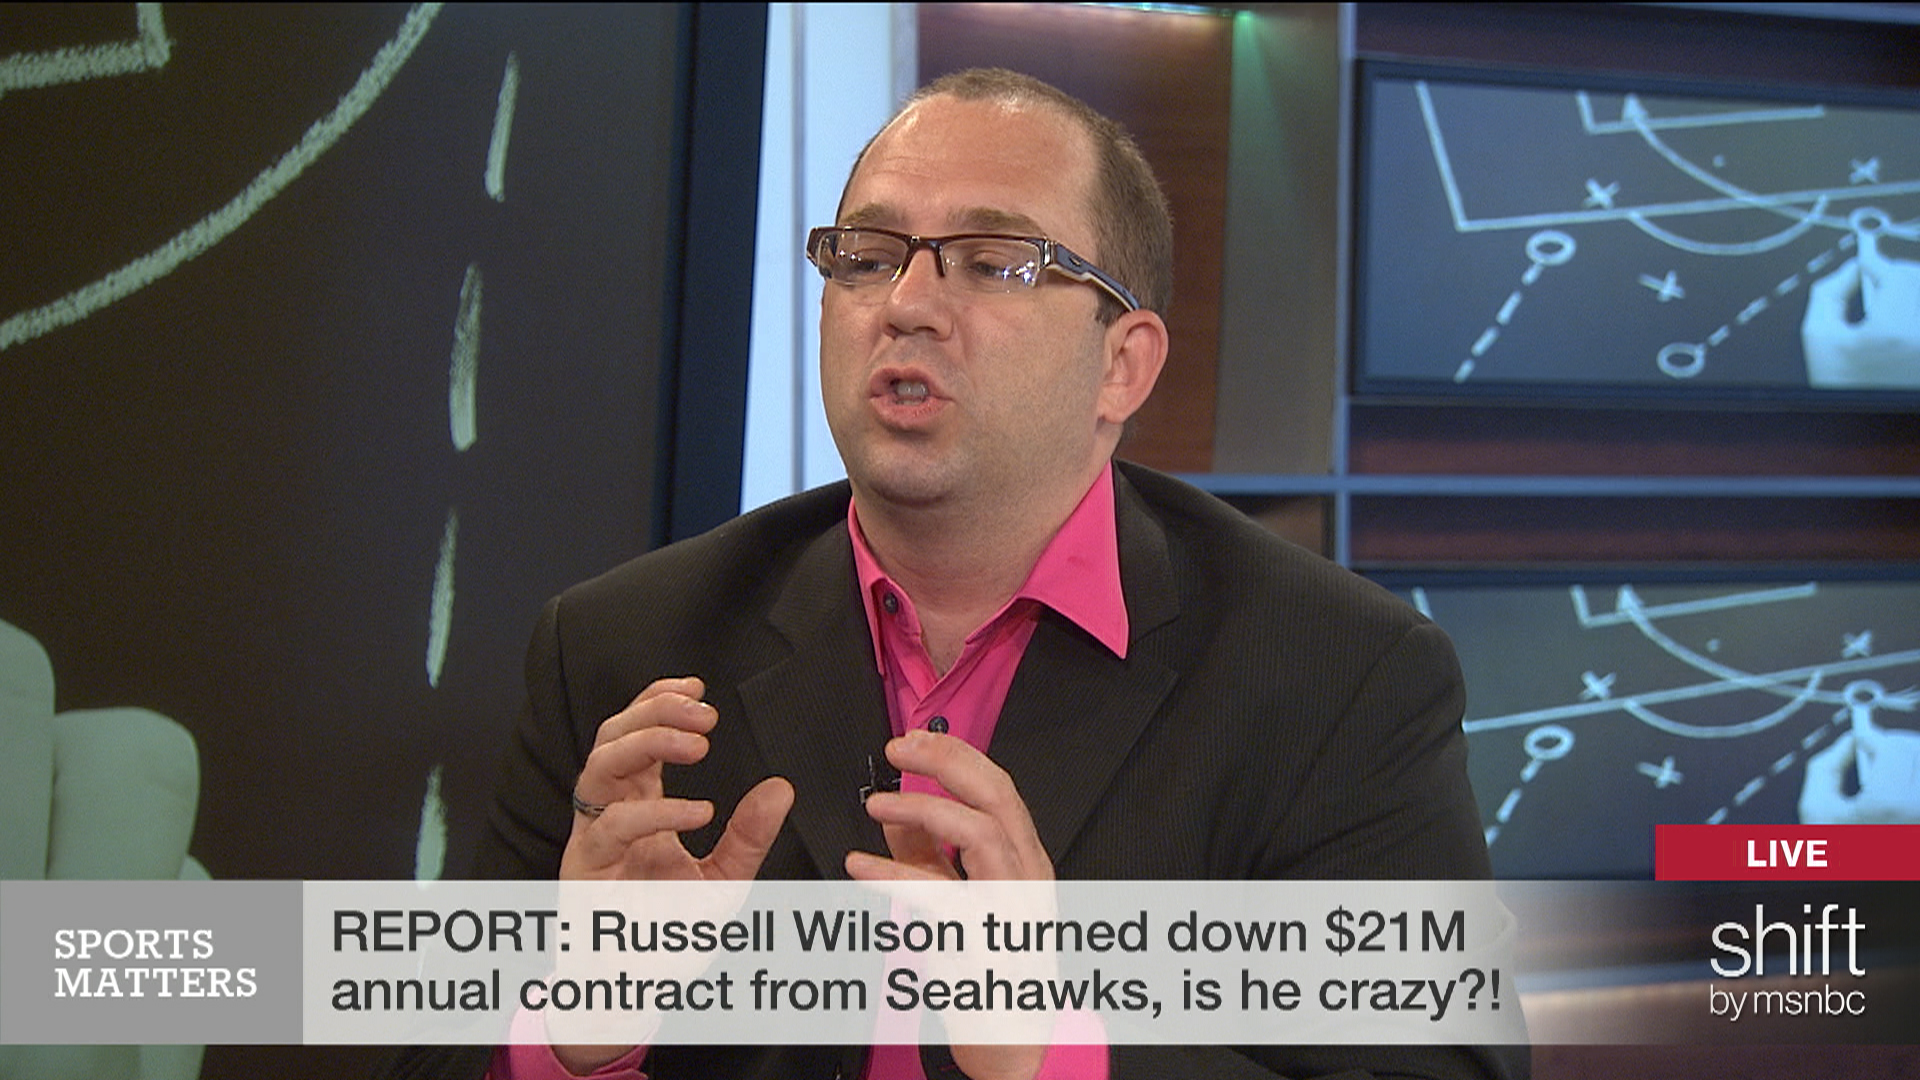 Should Russell Wilson have taken the money...